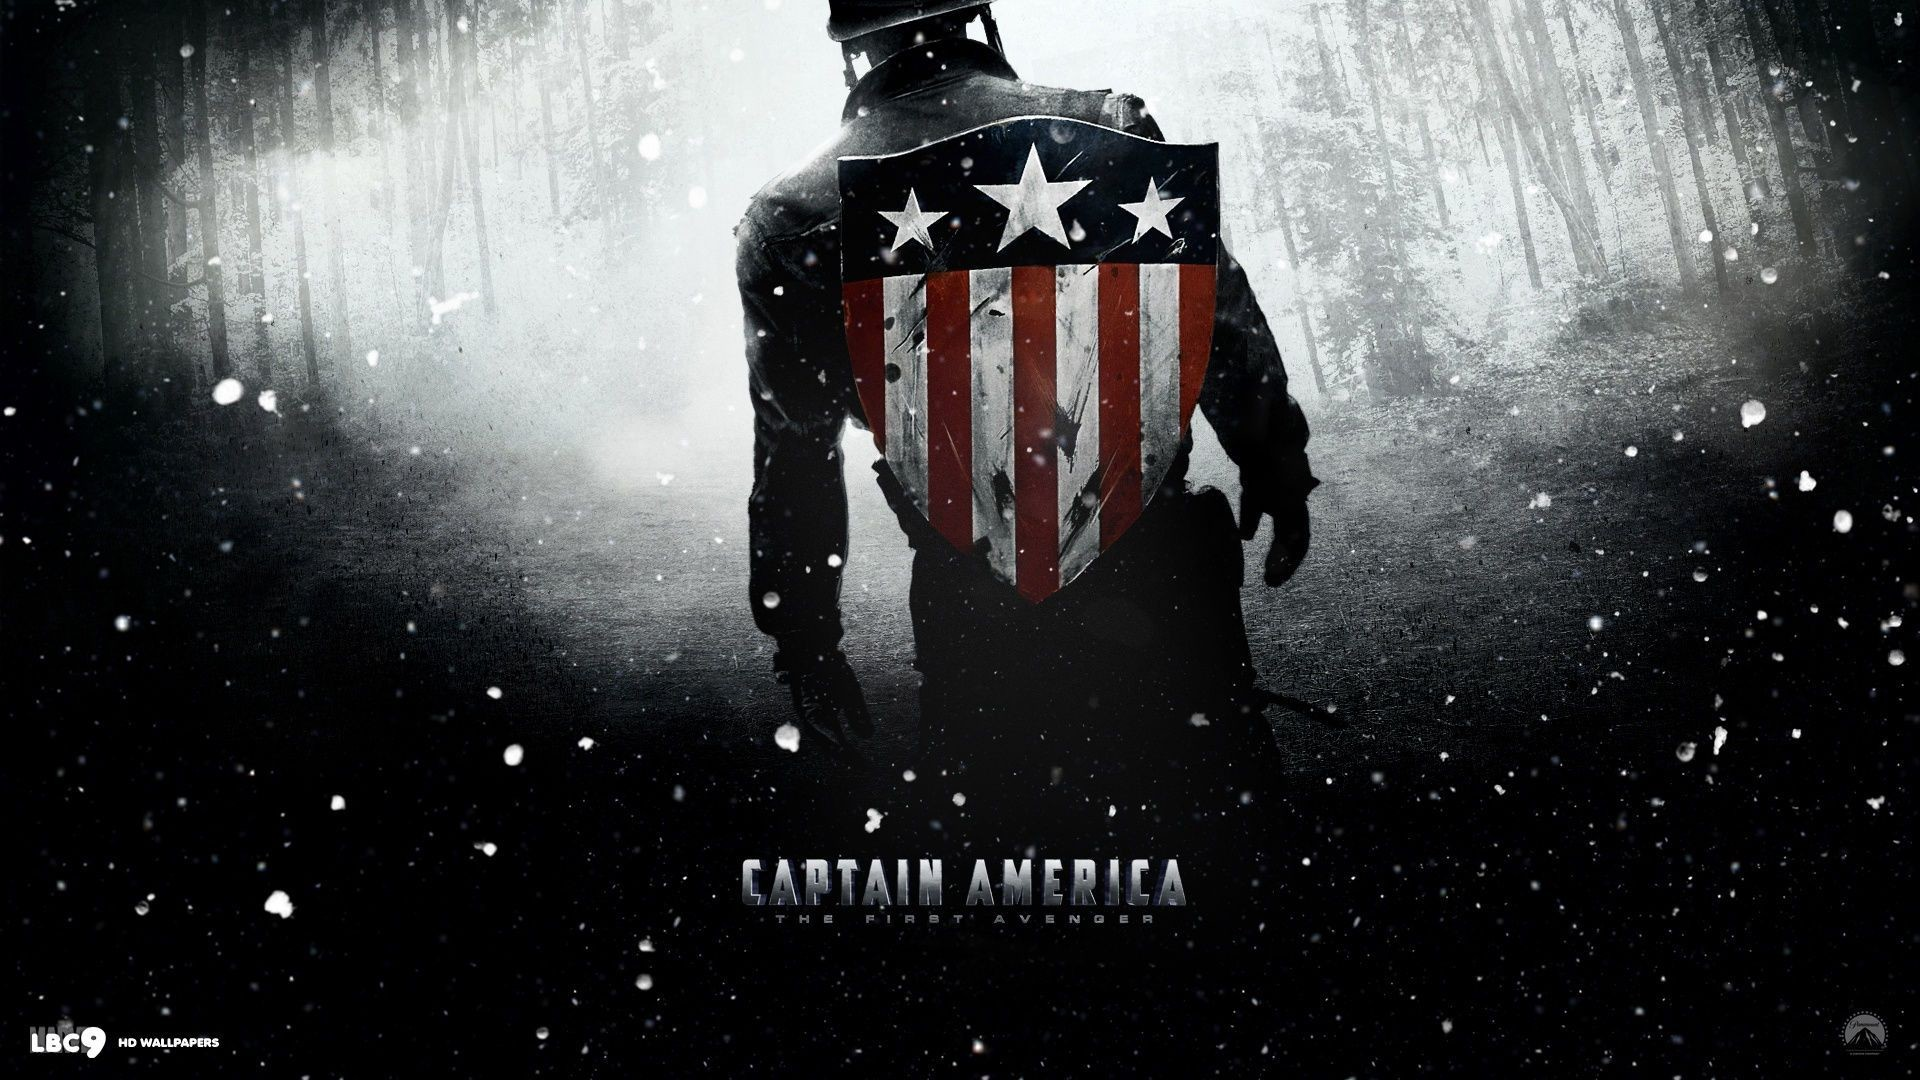 1920x1080 Wallpaper Hd Captain America The First Avenger - 1530981